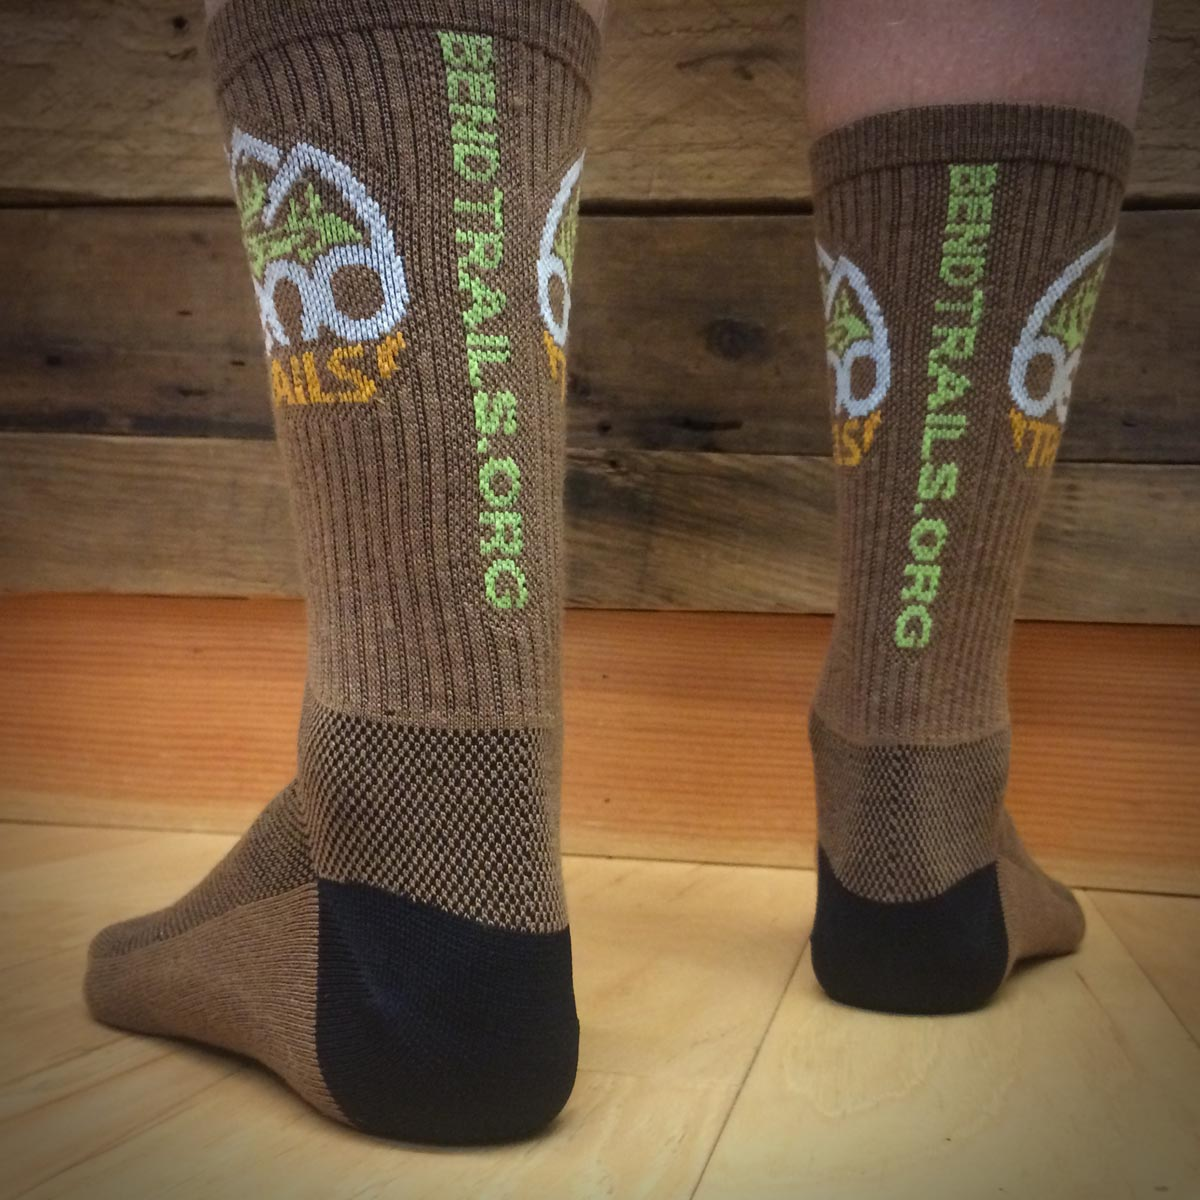 BendTrails Bike Socks from Sock Guy®